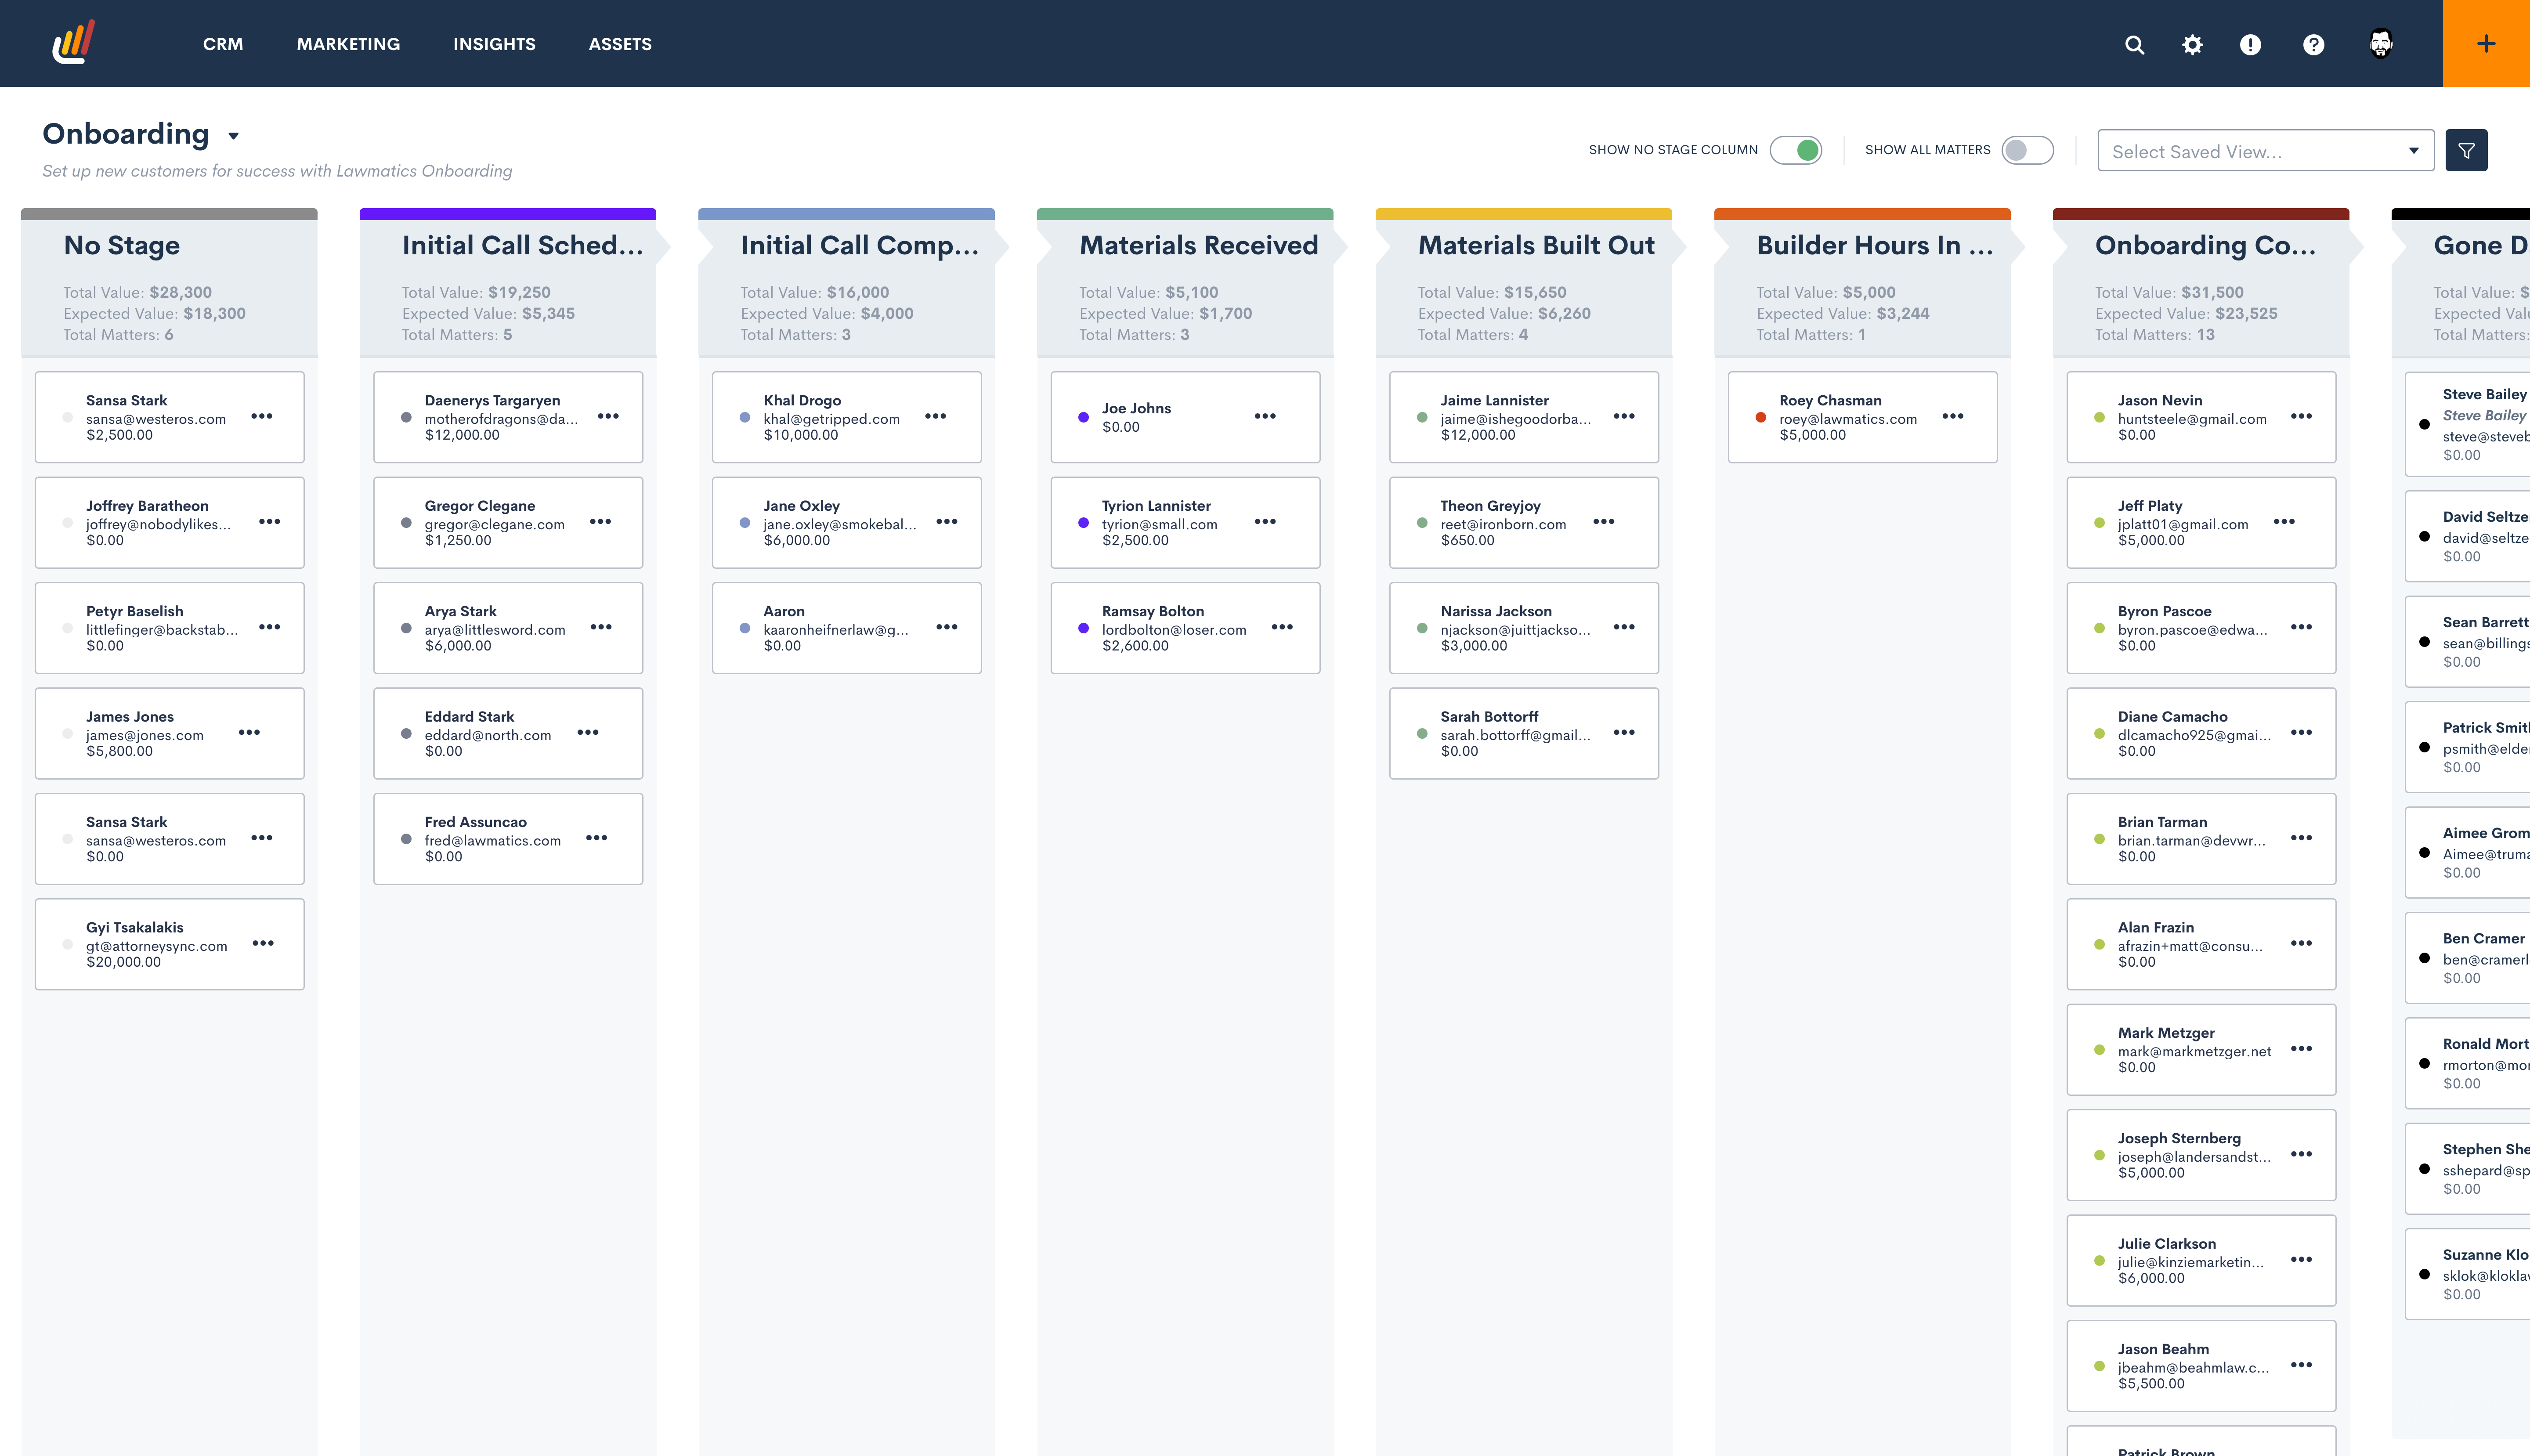 Pipeline view gives you a visual of where all matters stand at any given time. You can customize the pipeline stages to meet your firm's unique needs and processes. You can even have multiple pipelines to organize your leads according to their status.